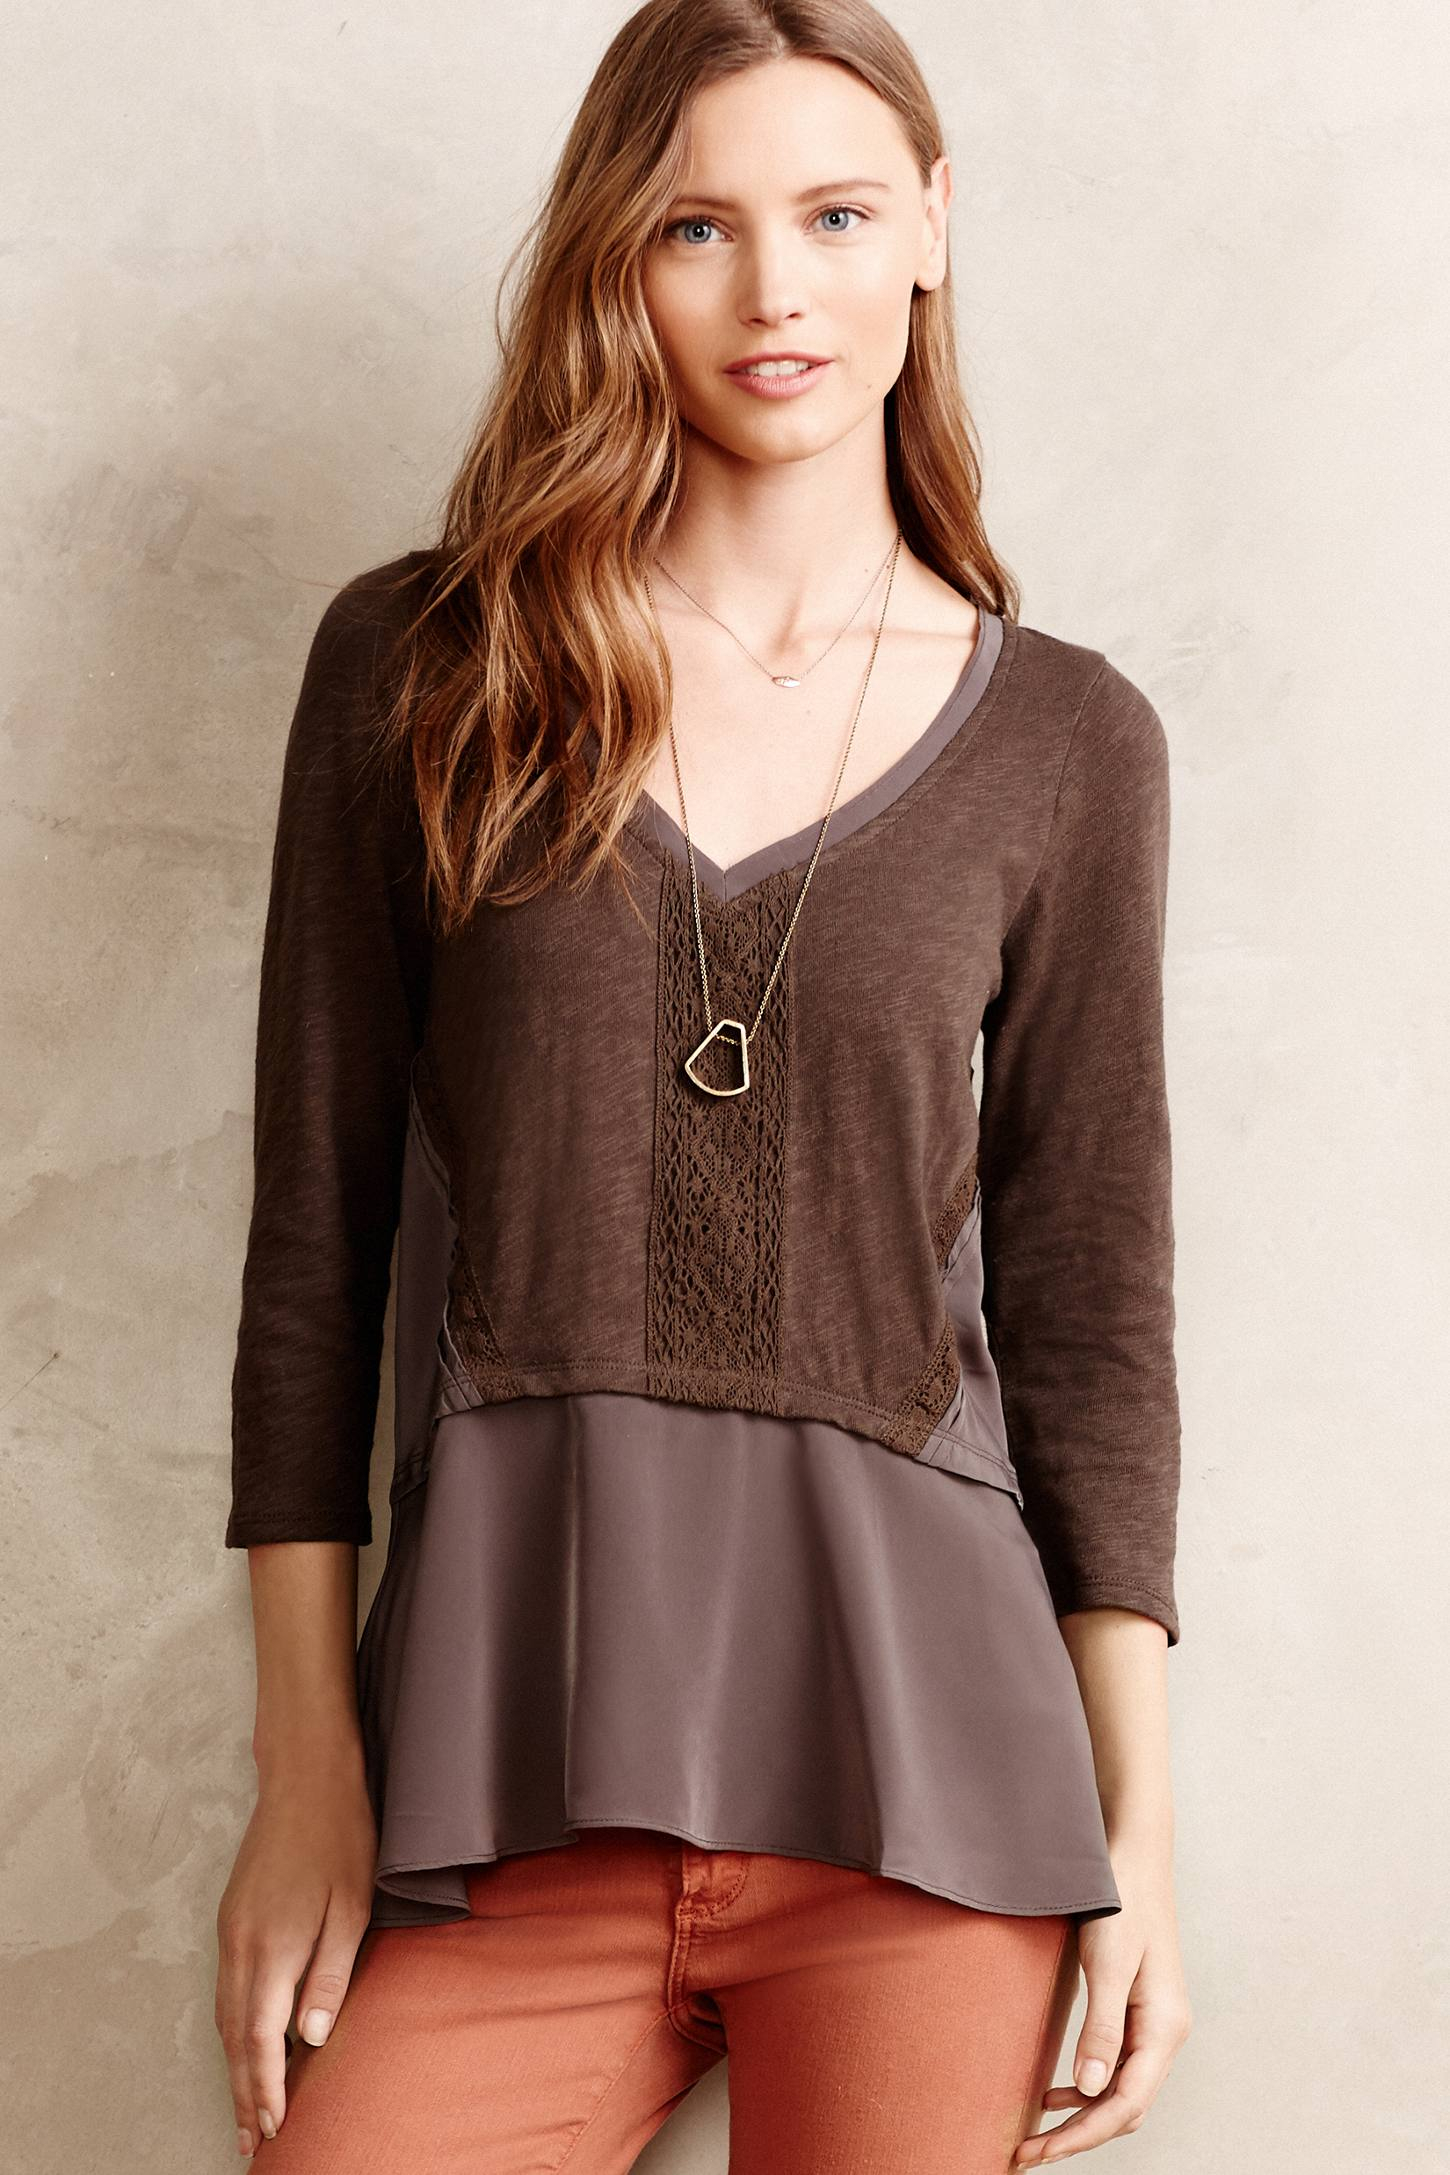 Meadow Rue Clothing Brand